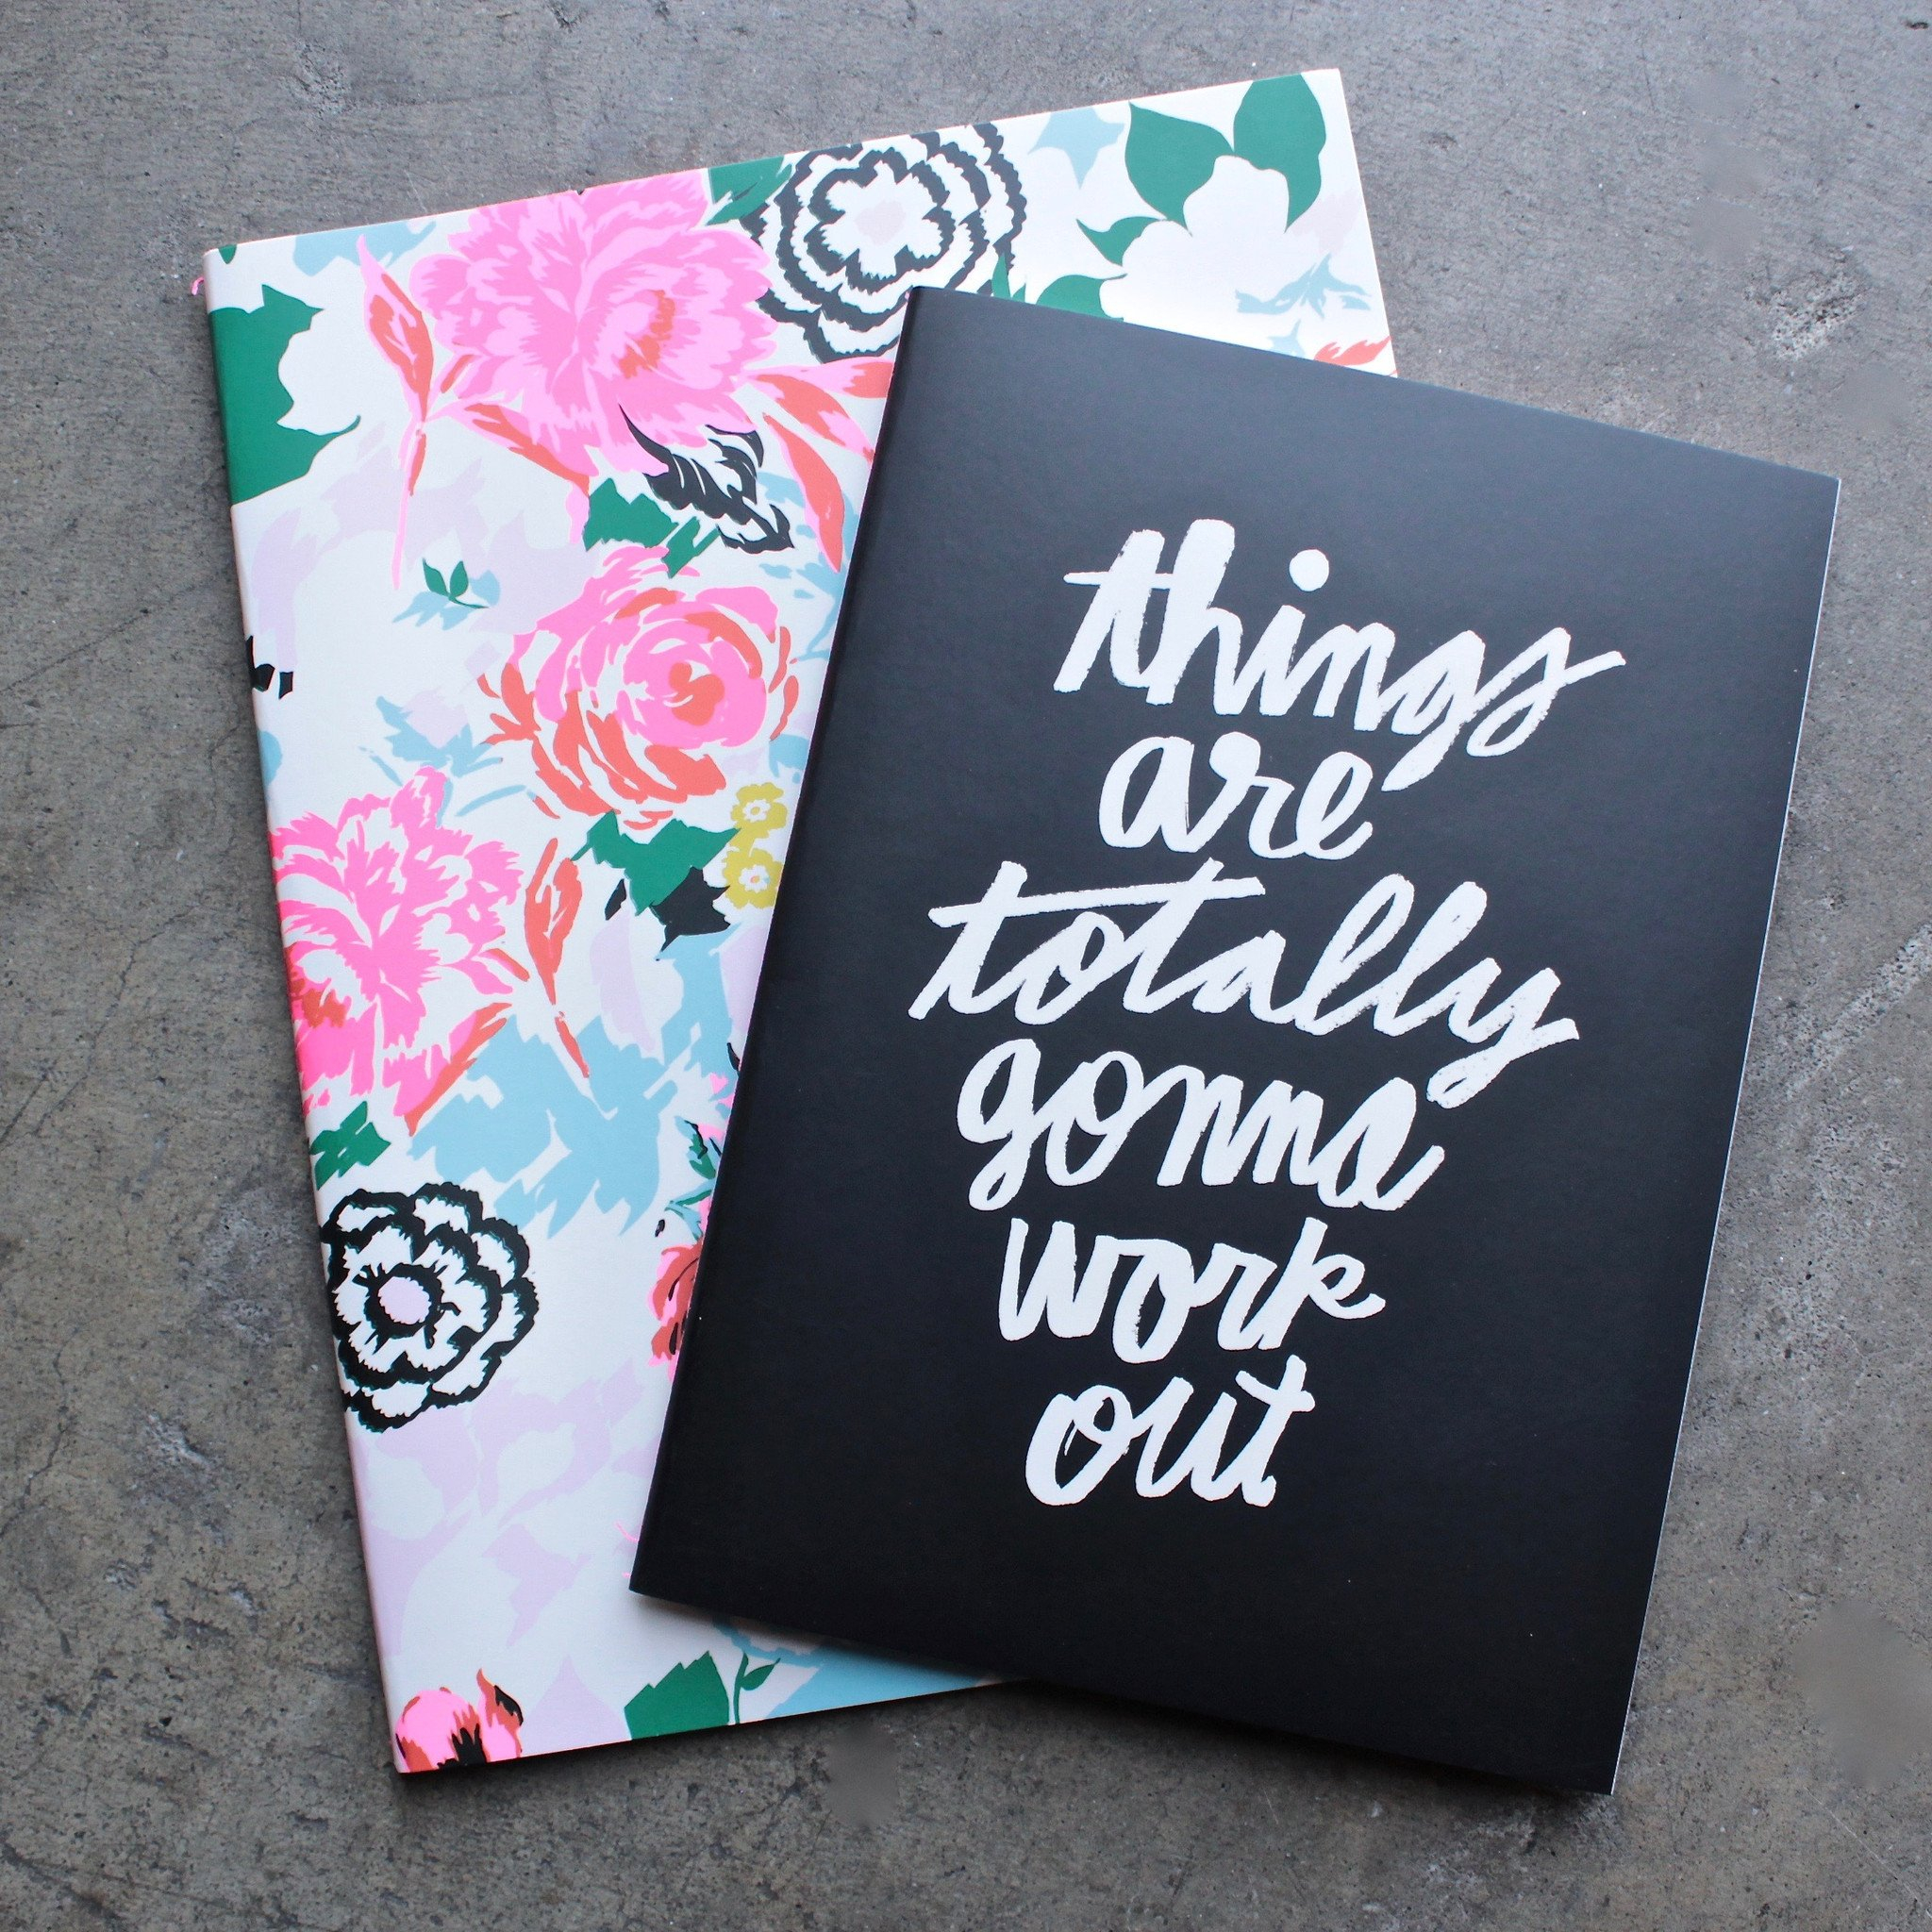 Image of Ban.do - Good Ideas Notebook Set in Florabunda + Things are Totally Gonna Work Out